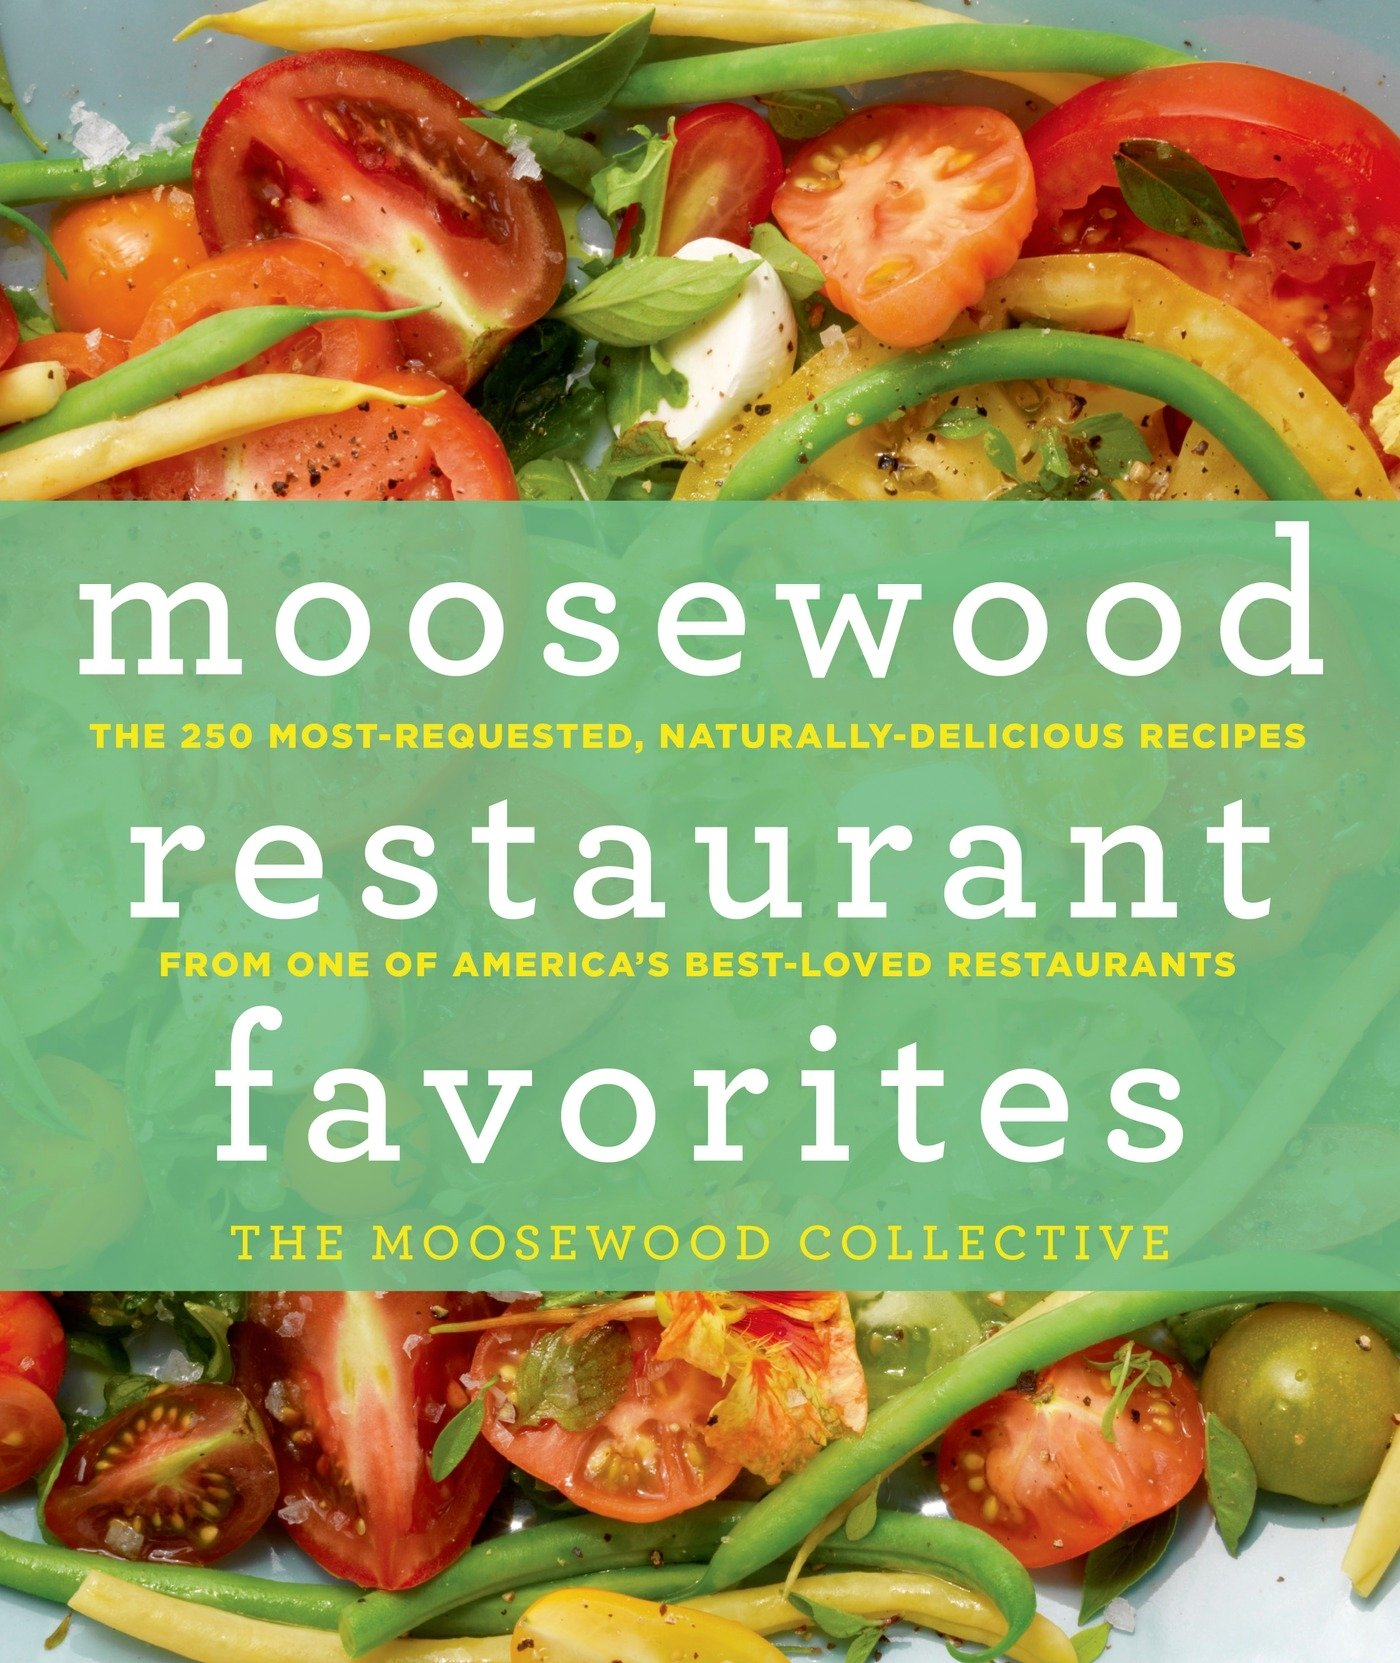 Moosewood Restaurant Favorites: The 250 Most-Requested, Naturally Delicious Recipes from One of America's Best-Loved Restaurants by imusti